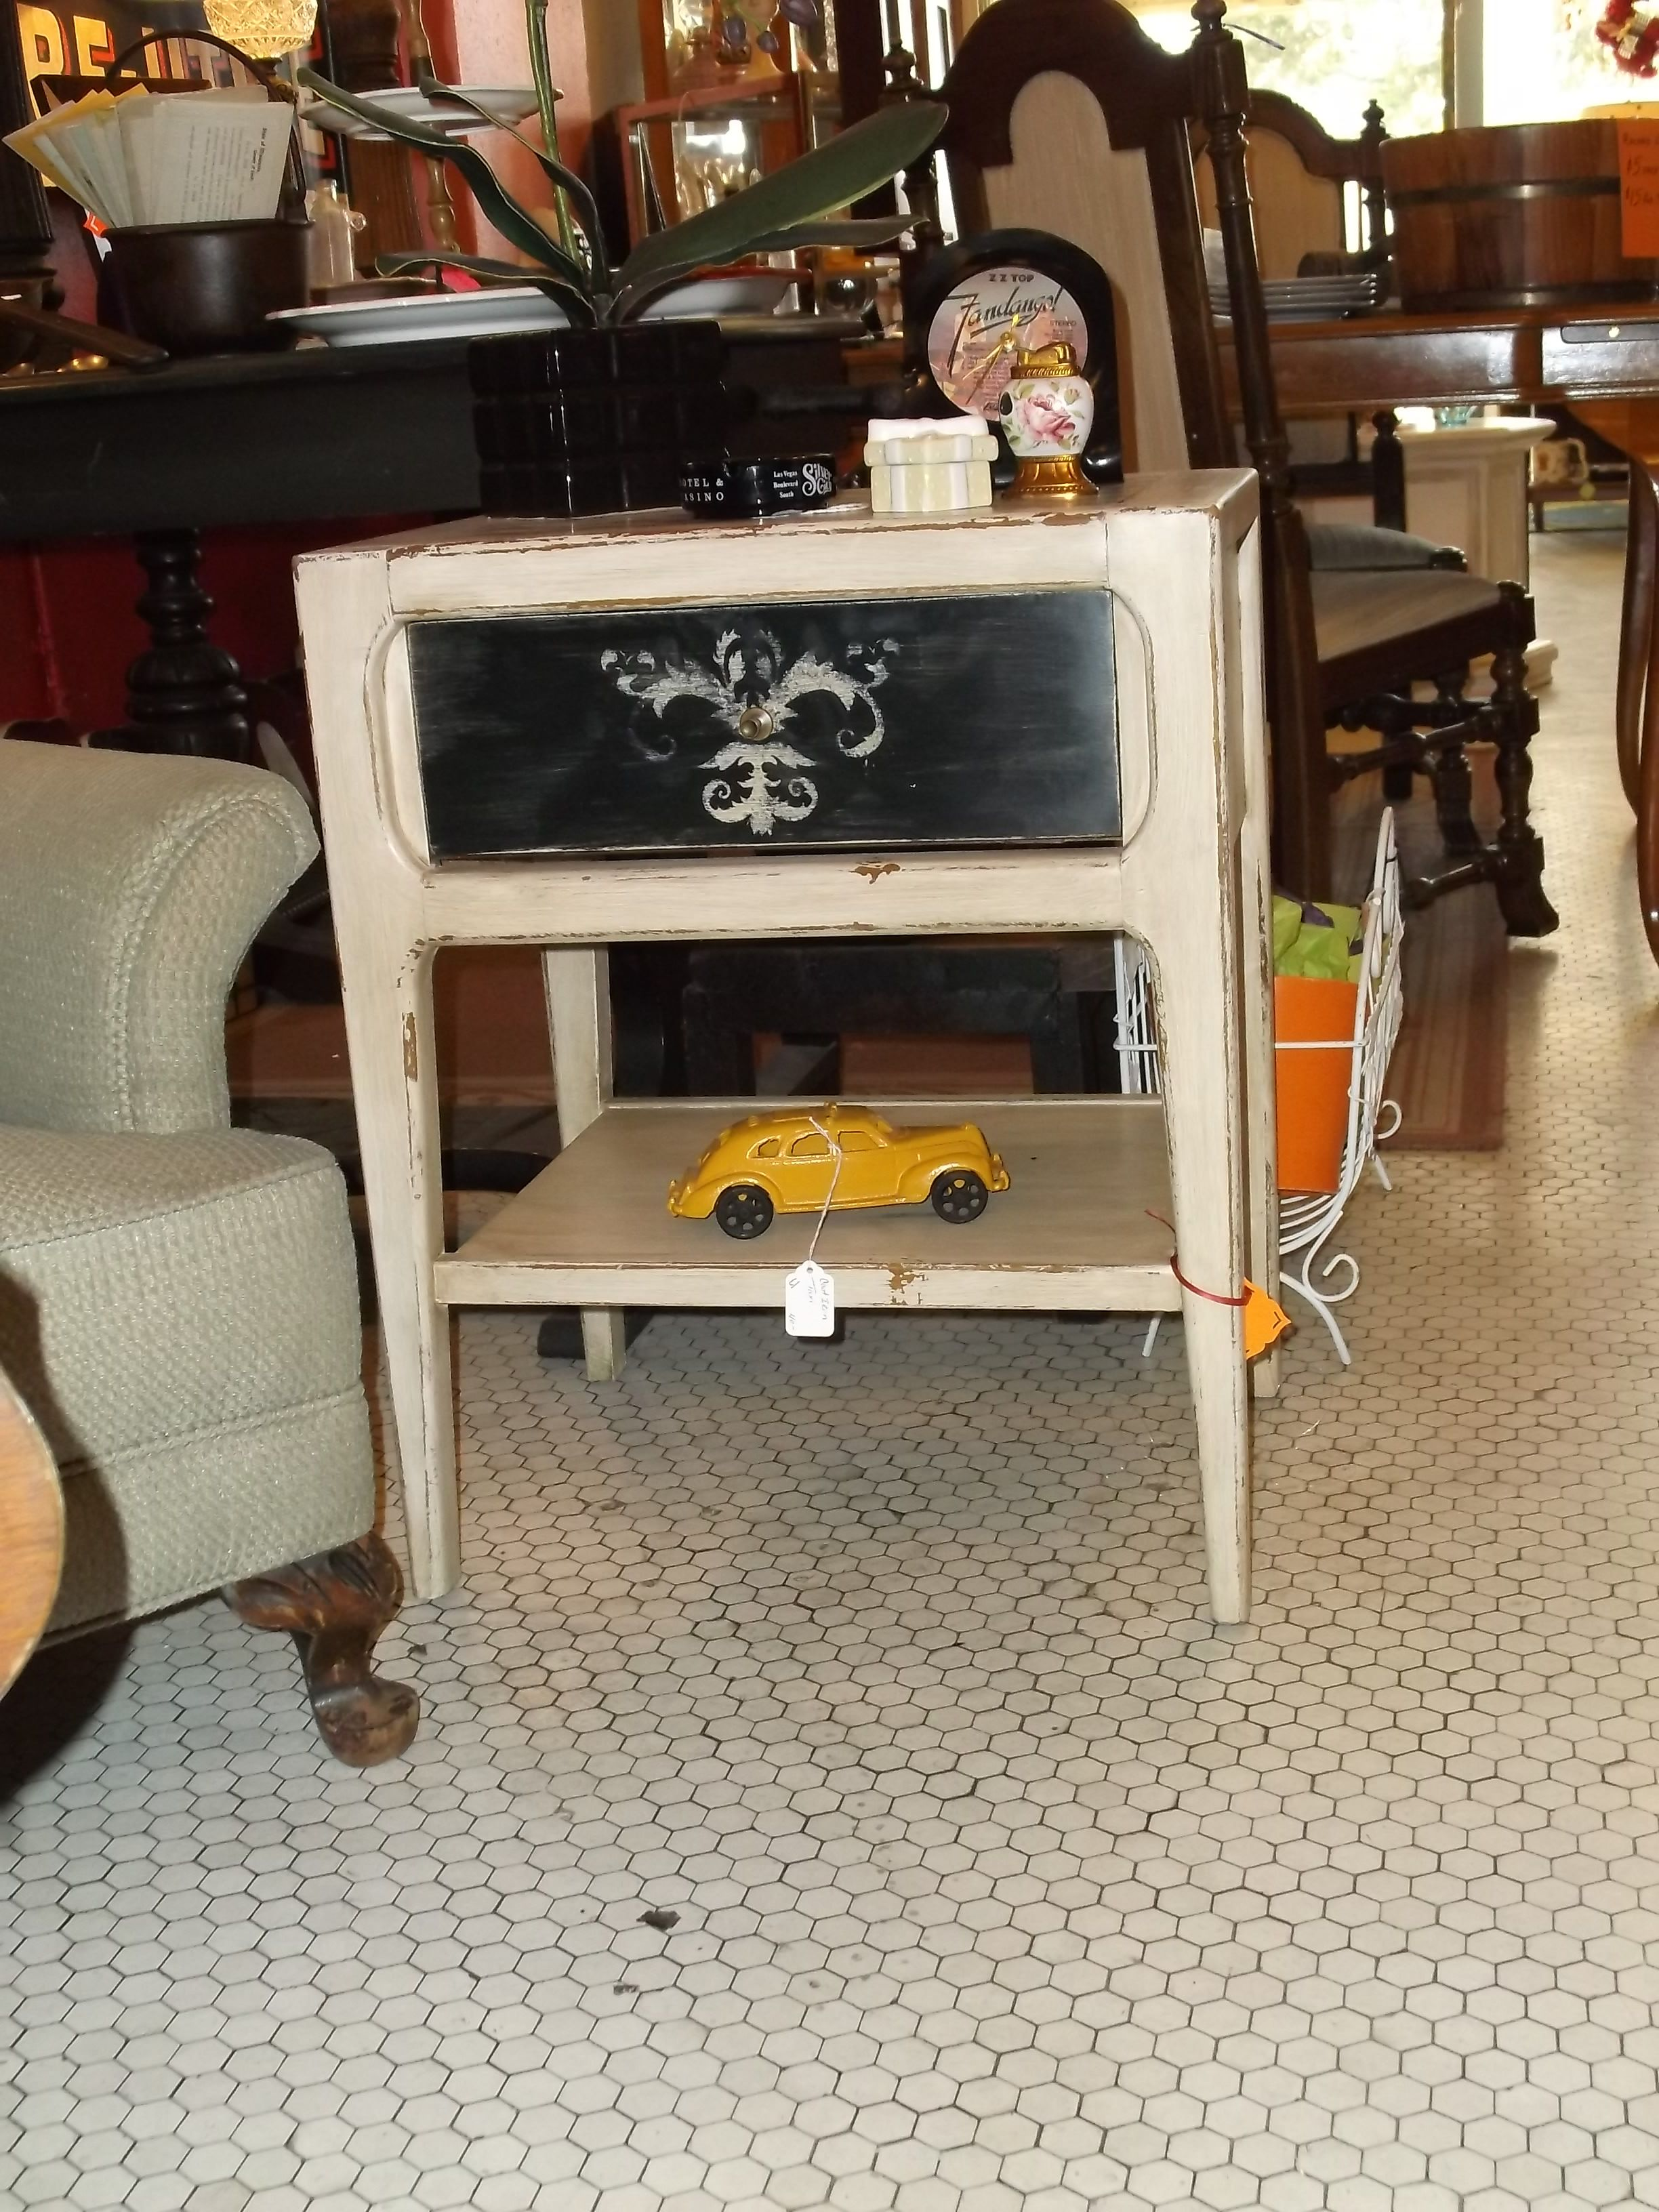 Hand painted vintage 1950s end table. Classic Black and white with a touch of chevron! Boo ya!